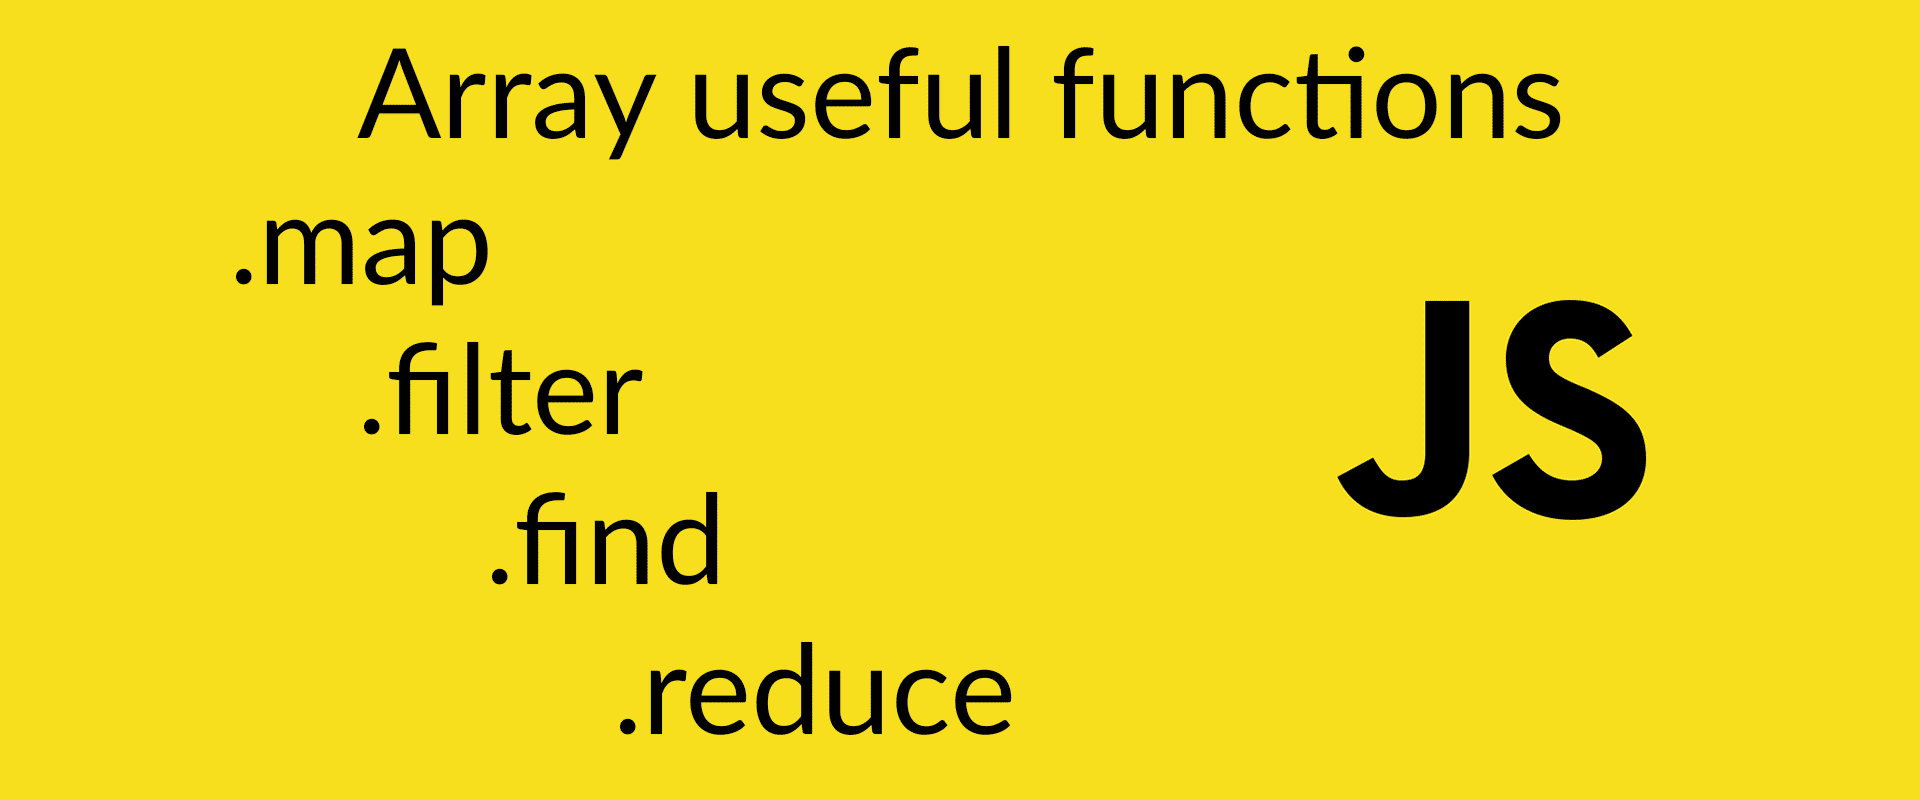 javascript-useful-array-functions-map-filter-find-and-reduce